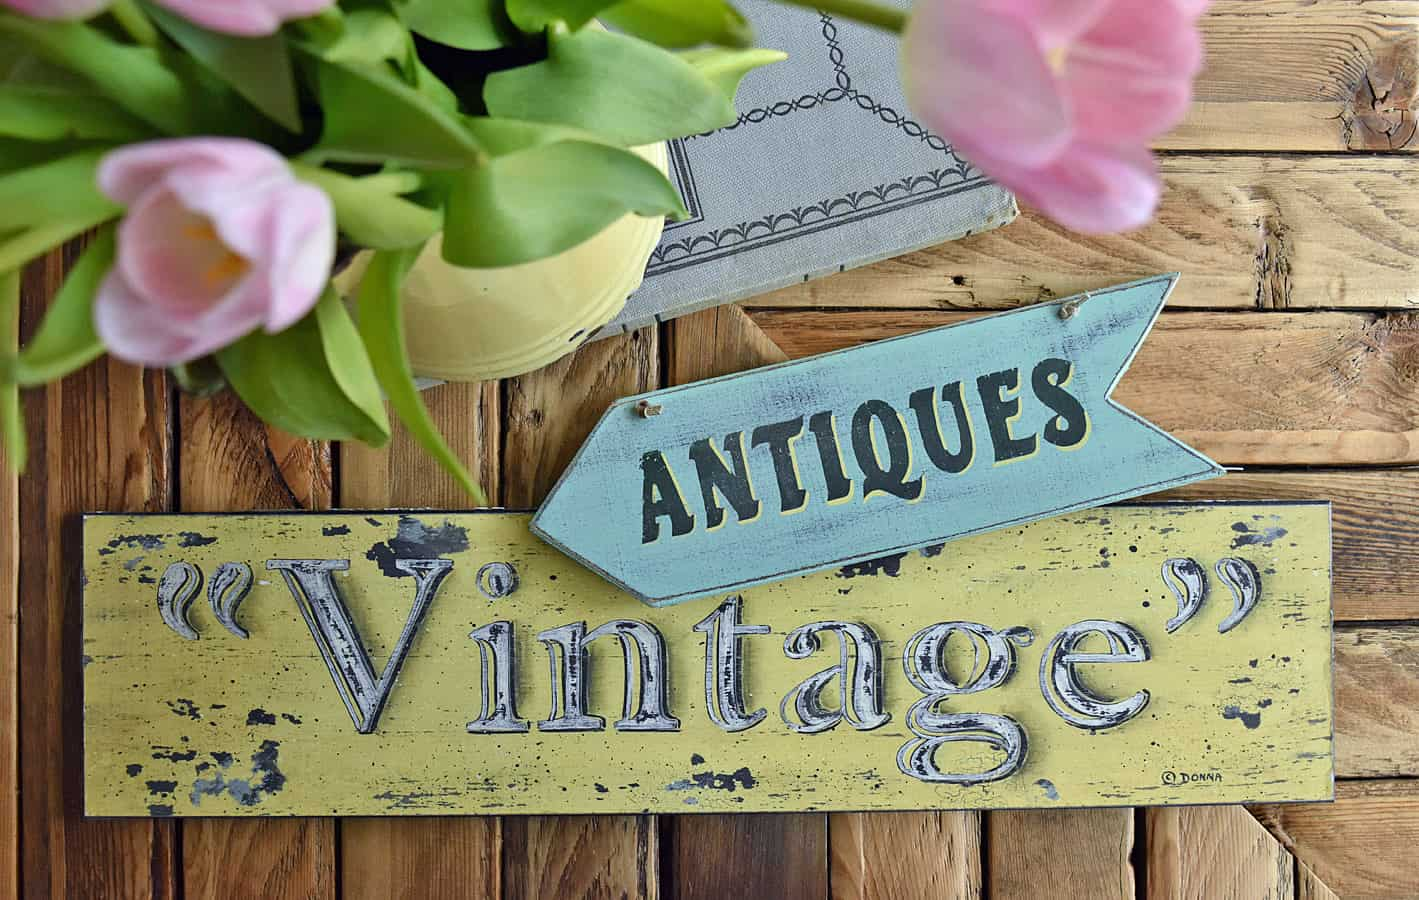 Vintage/Antique signs